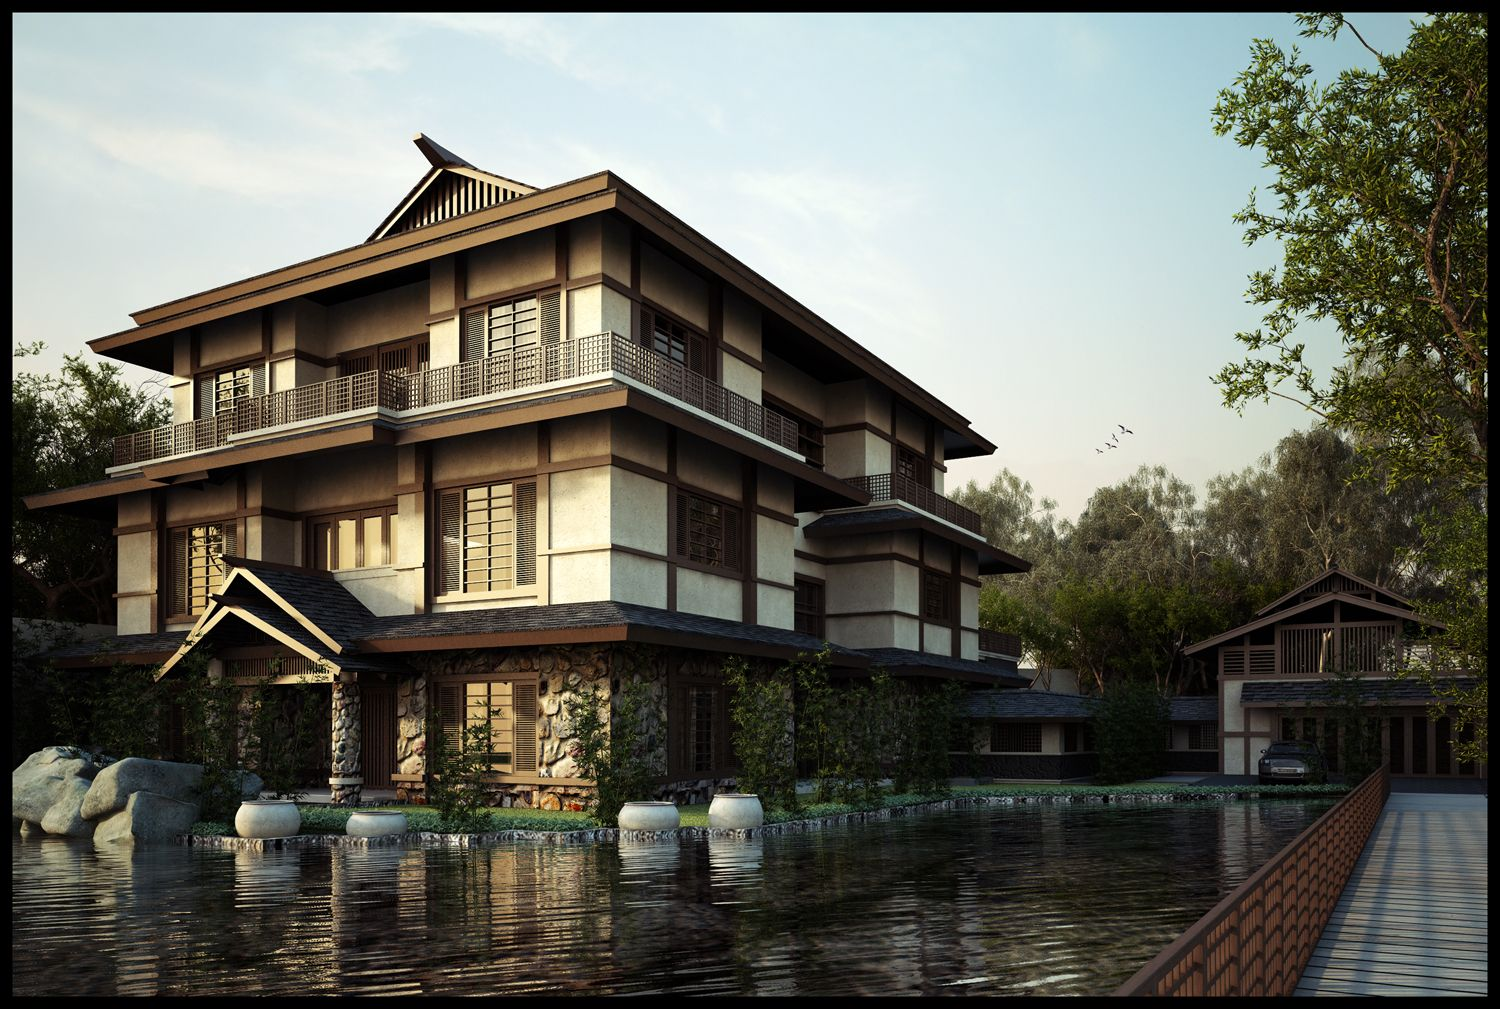 Japanese Architecture Japanese Style House Traditional Japanese House Japanese House